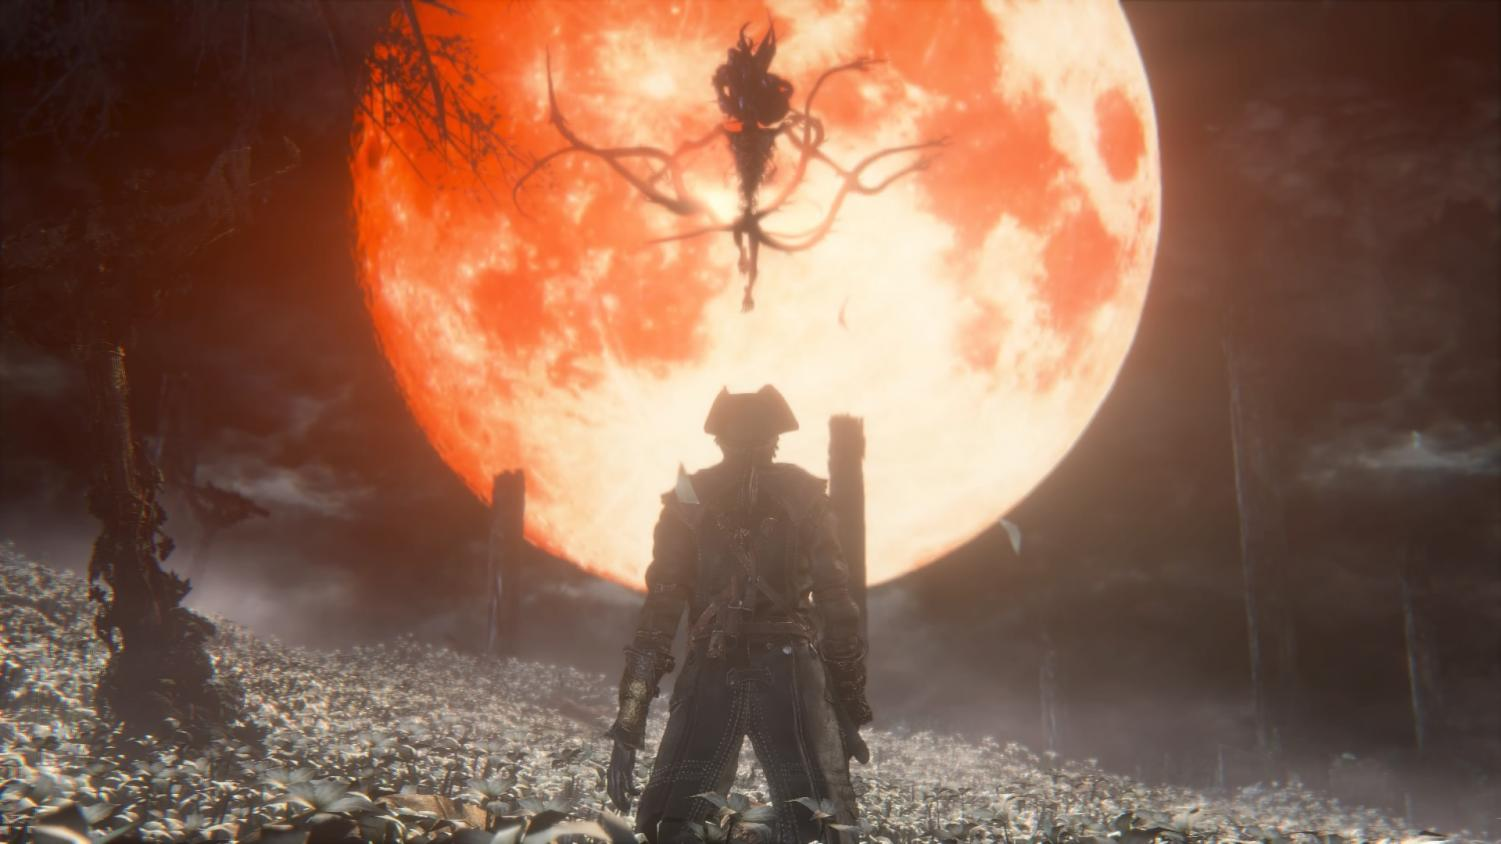 Via bloodborne.wikia.com